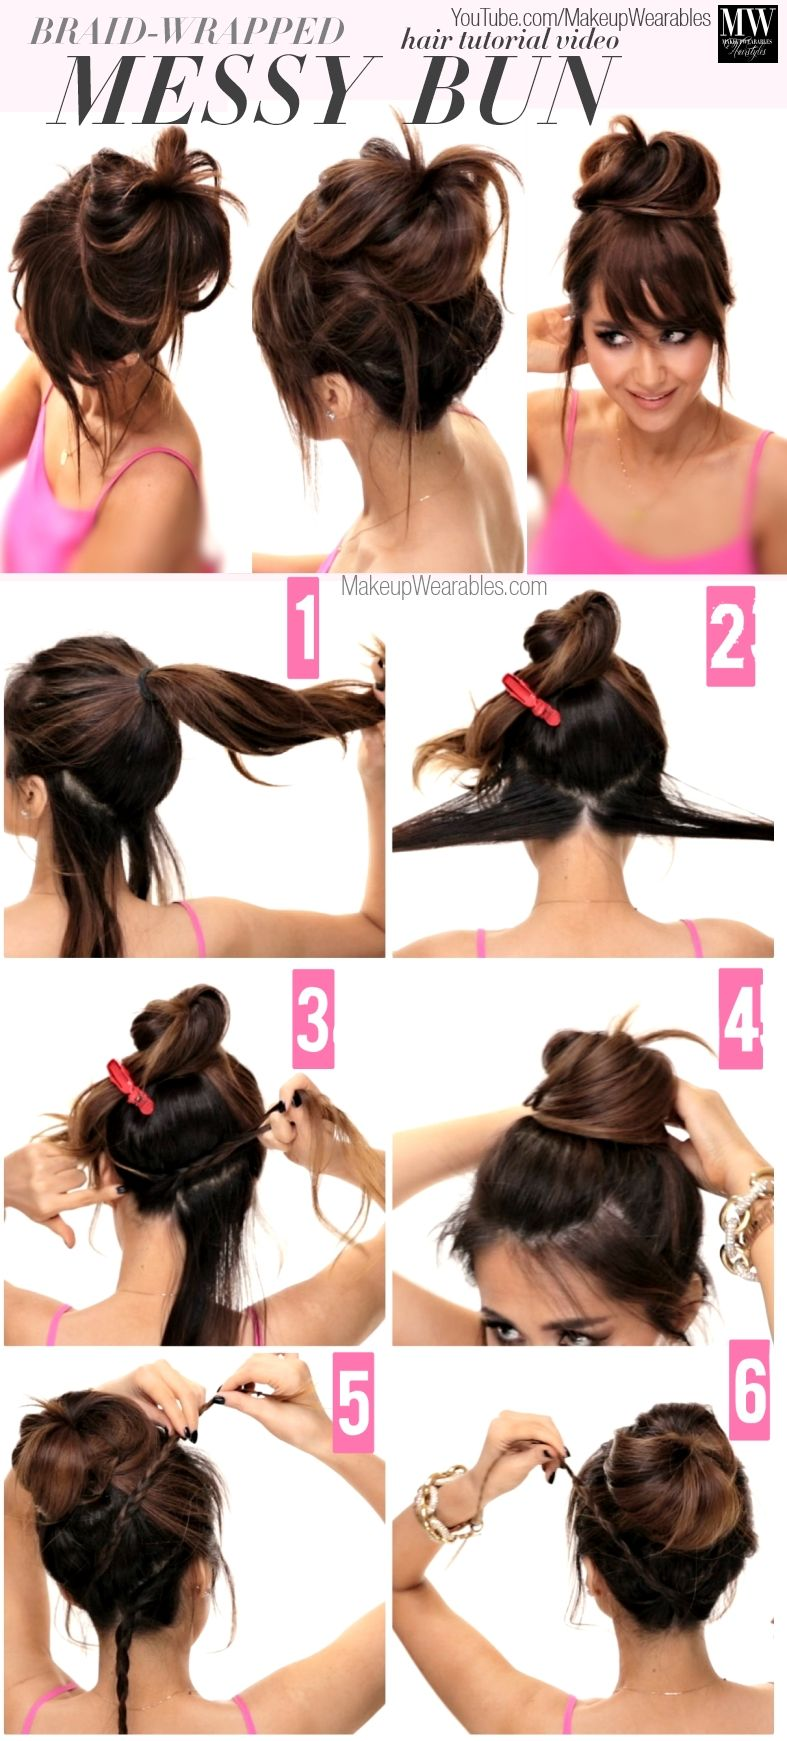 Gow To Create A Big Braided Messy Bun Updo Hair Styles Easy Hairstyles For Long Hair Long Hair Styles